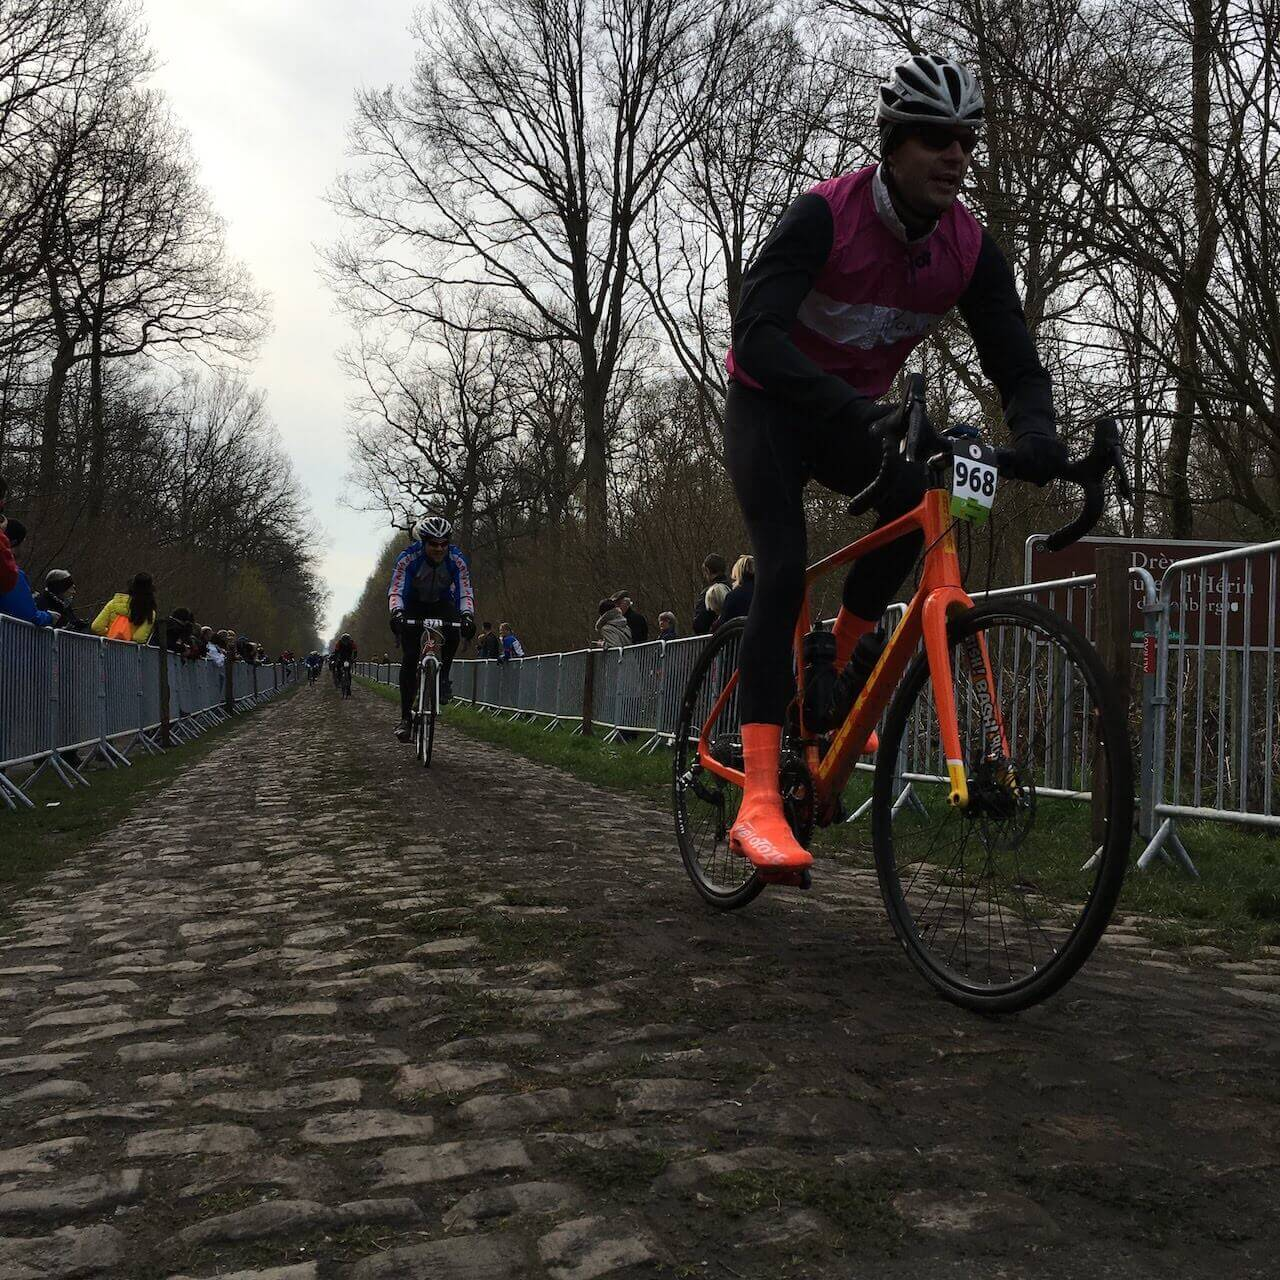 This afternoon we'll ride a course designed by Phil Anderson that takes in some nice smaller roads, laneways and sections of the Paris Roubaix Challenge and race route.